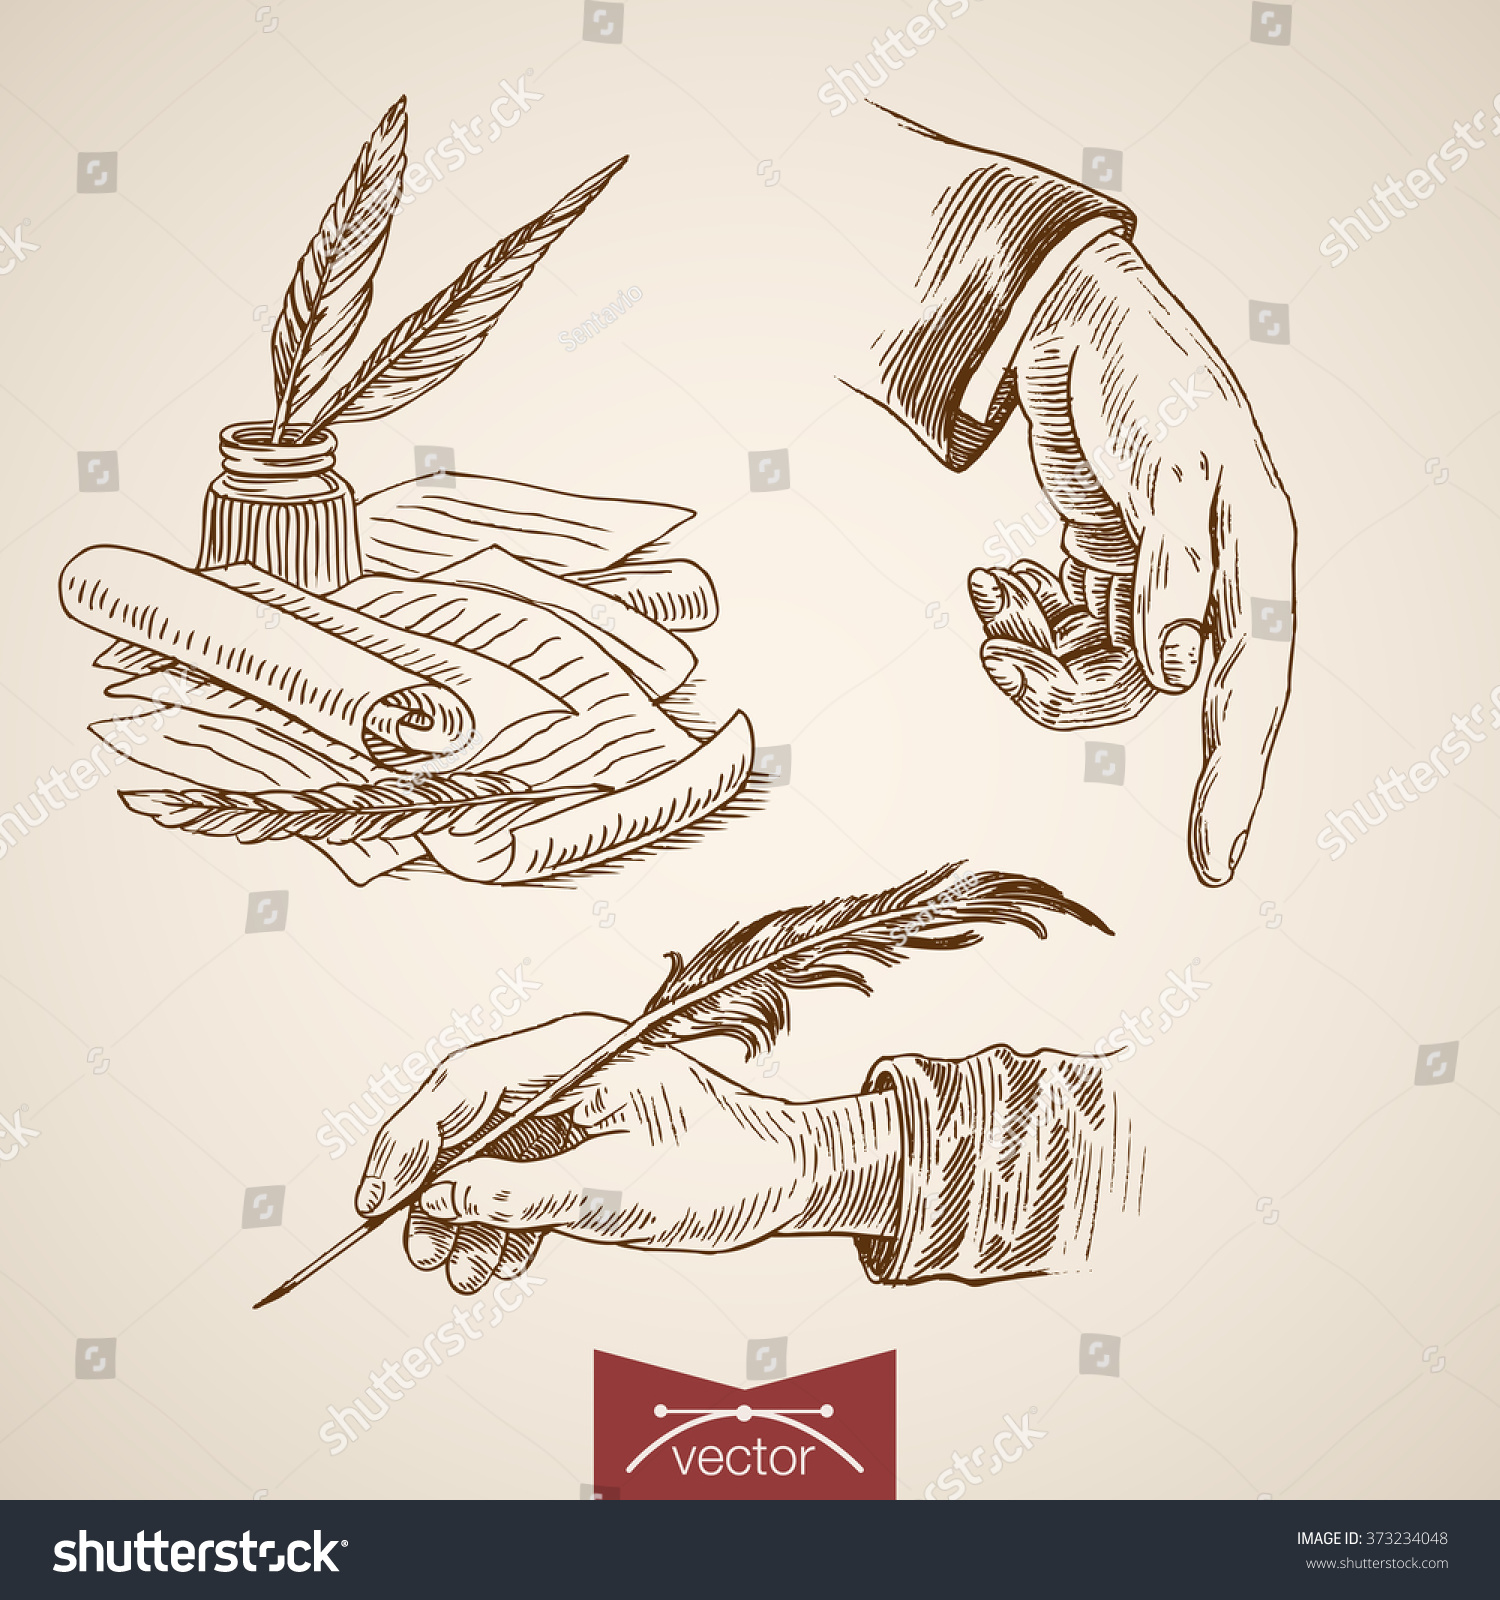 Poet Author Creative: Hand Hold Writing Feather Inkwell Pointer Stock Vector